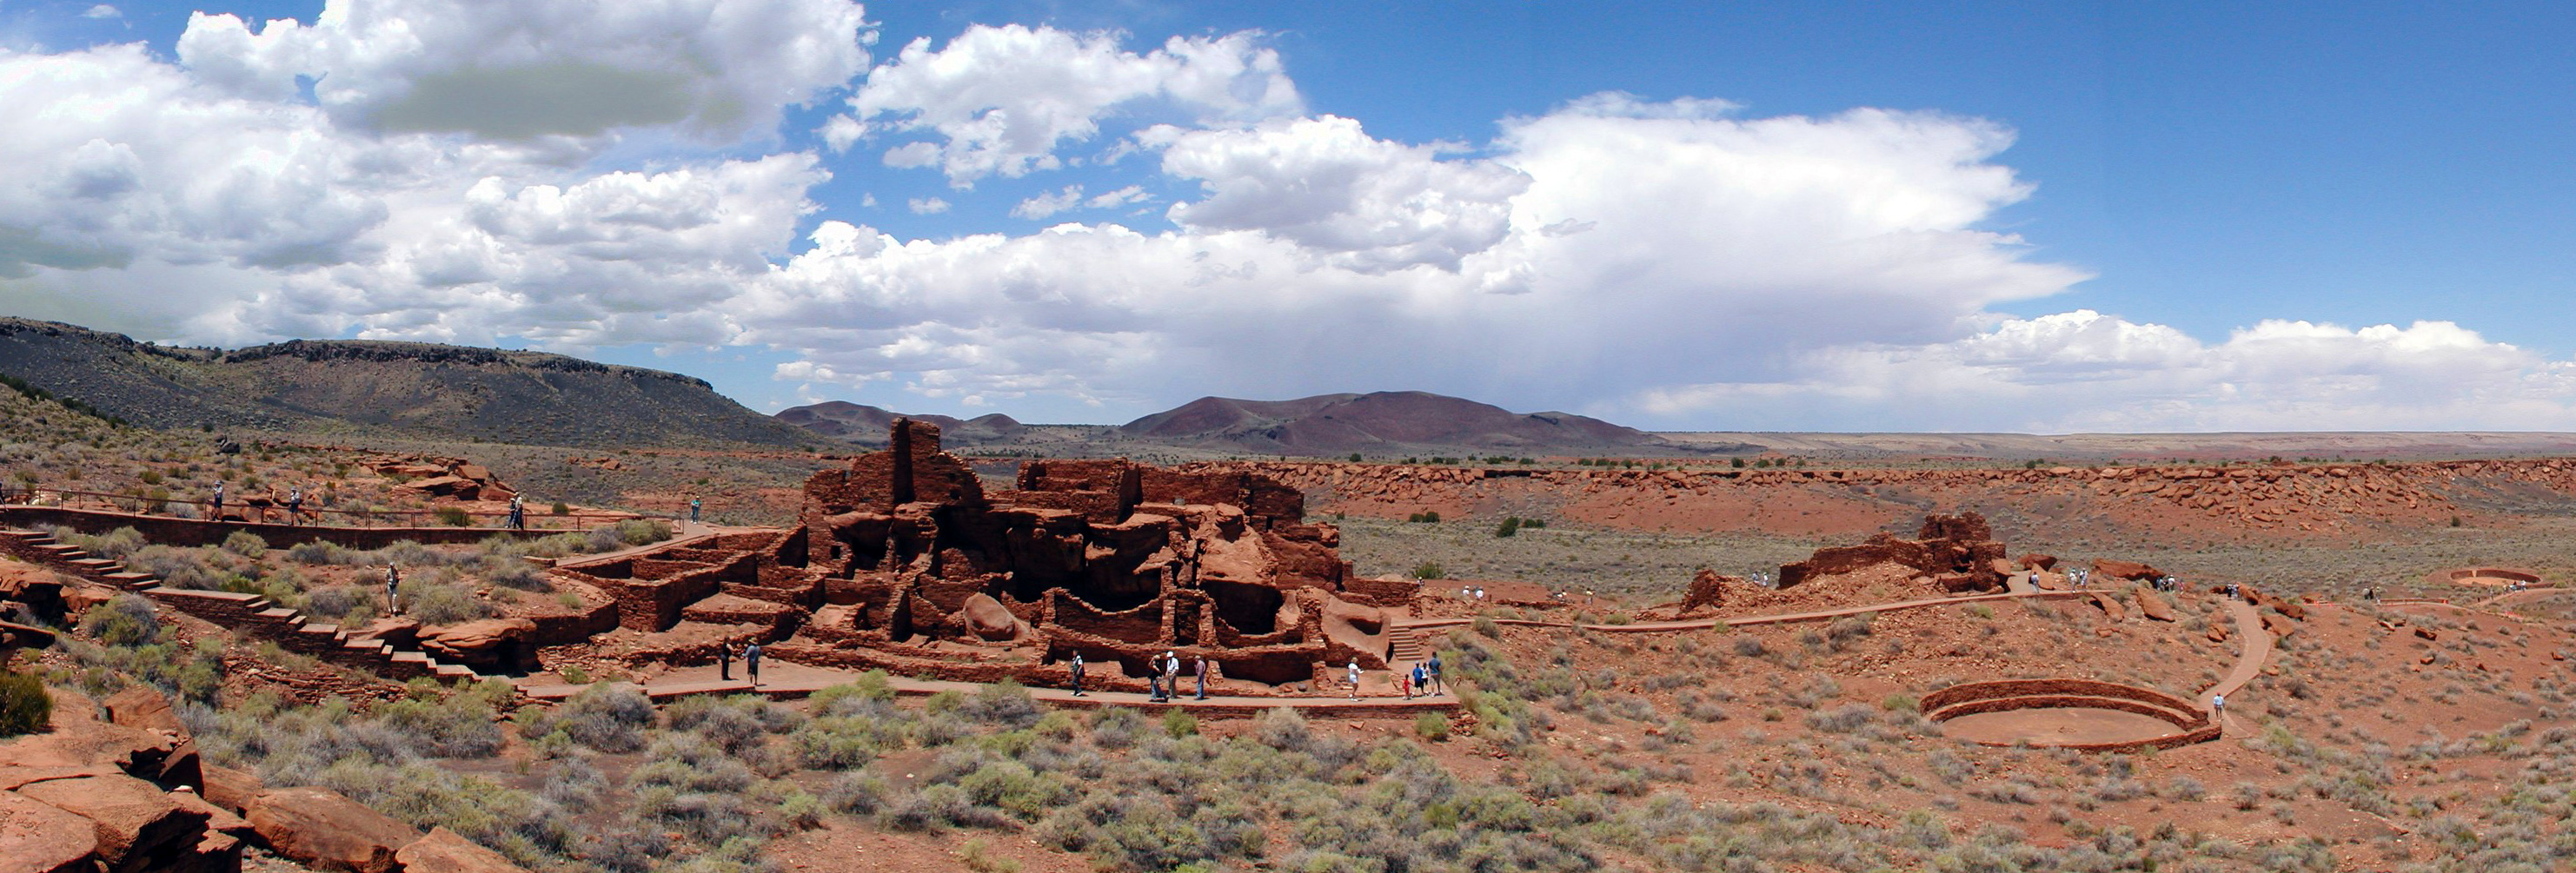 Panoramic view of the pueblo dwelling and other structures at Wupatki National Monument. Photo by Stephen McCluskey via Wikipedia.